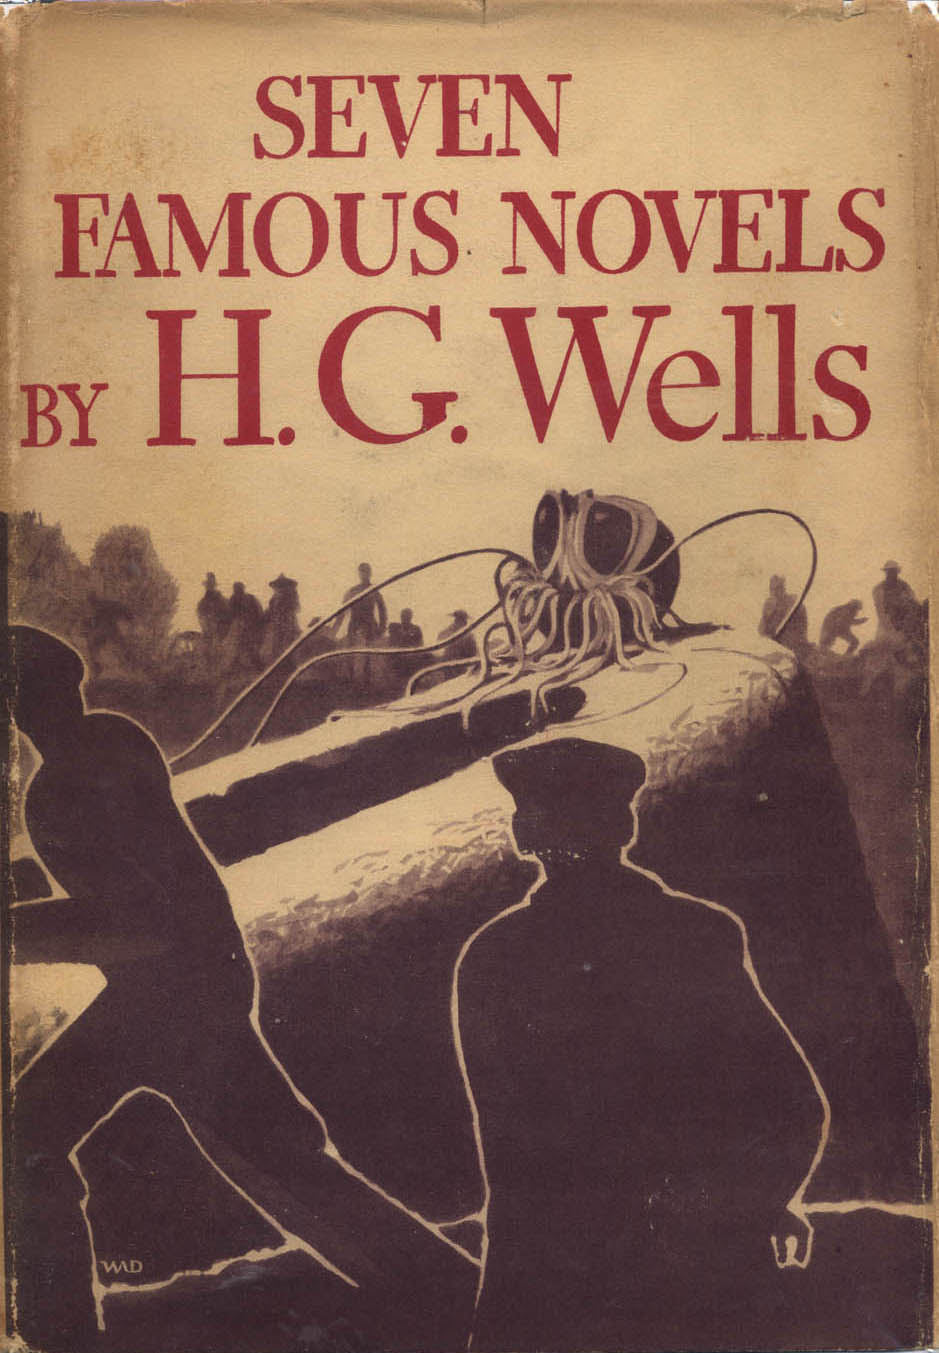 Jacket for Seven Famous Novels by H.G. Wells (New York: Alfred A. Knopf, Inc., 1934). Design, illustration and lettering by W.A. Dwiggins.